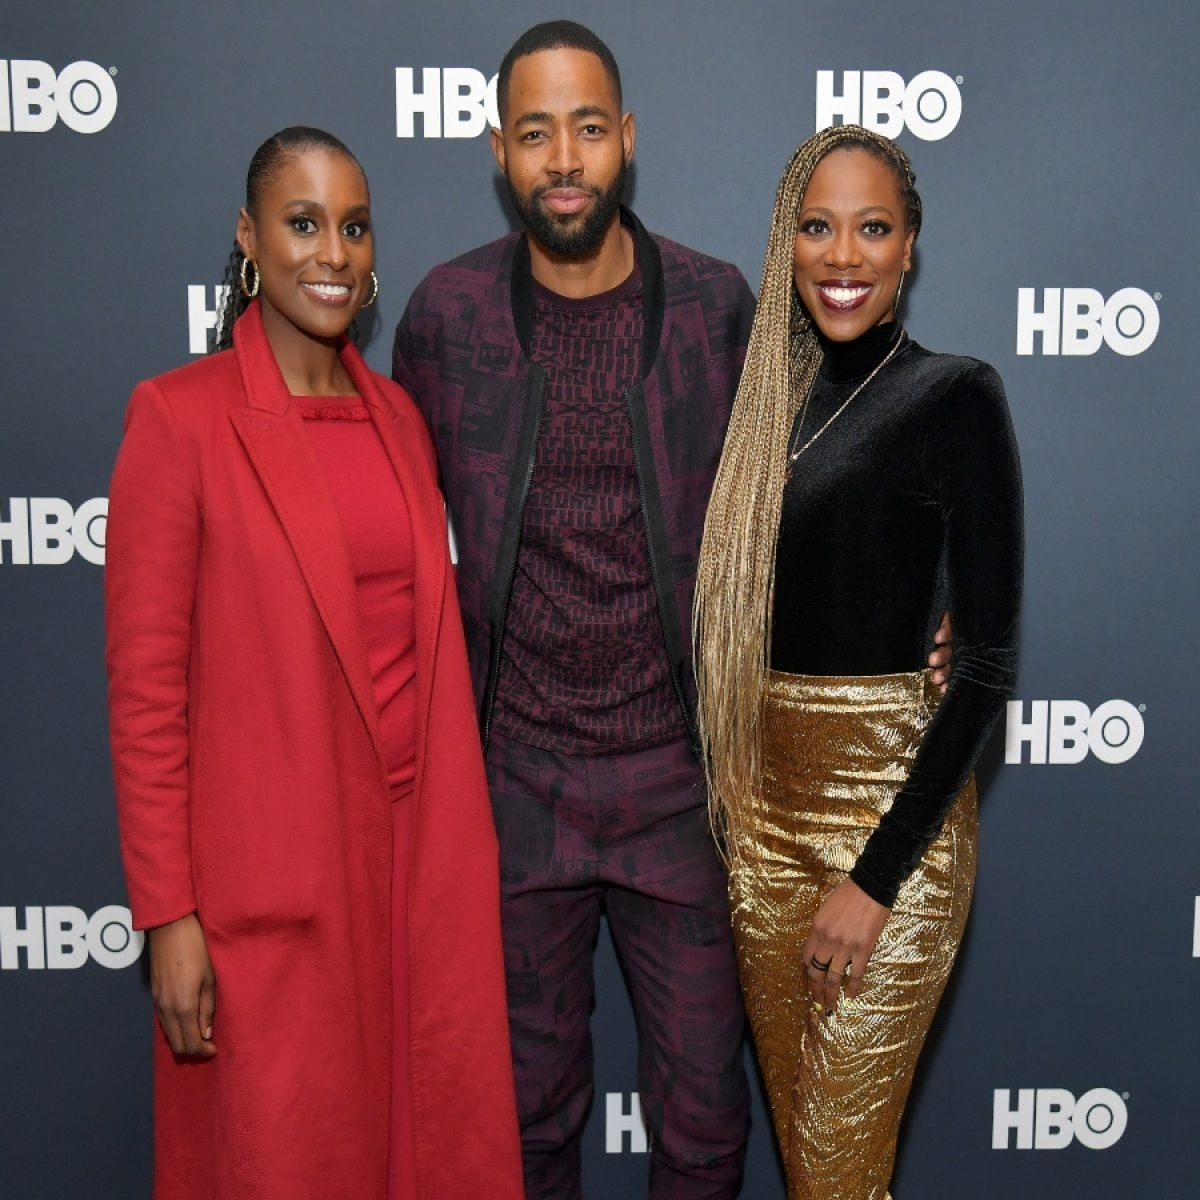 HBO Drops The Trailer For The Fifth and Final Season of 'Insecure'